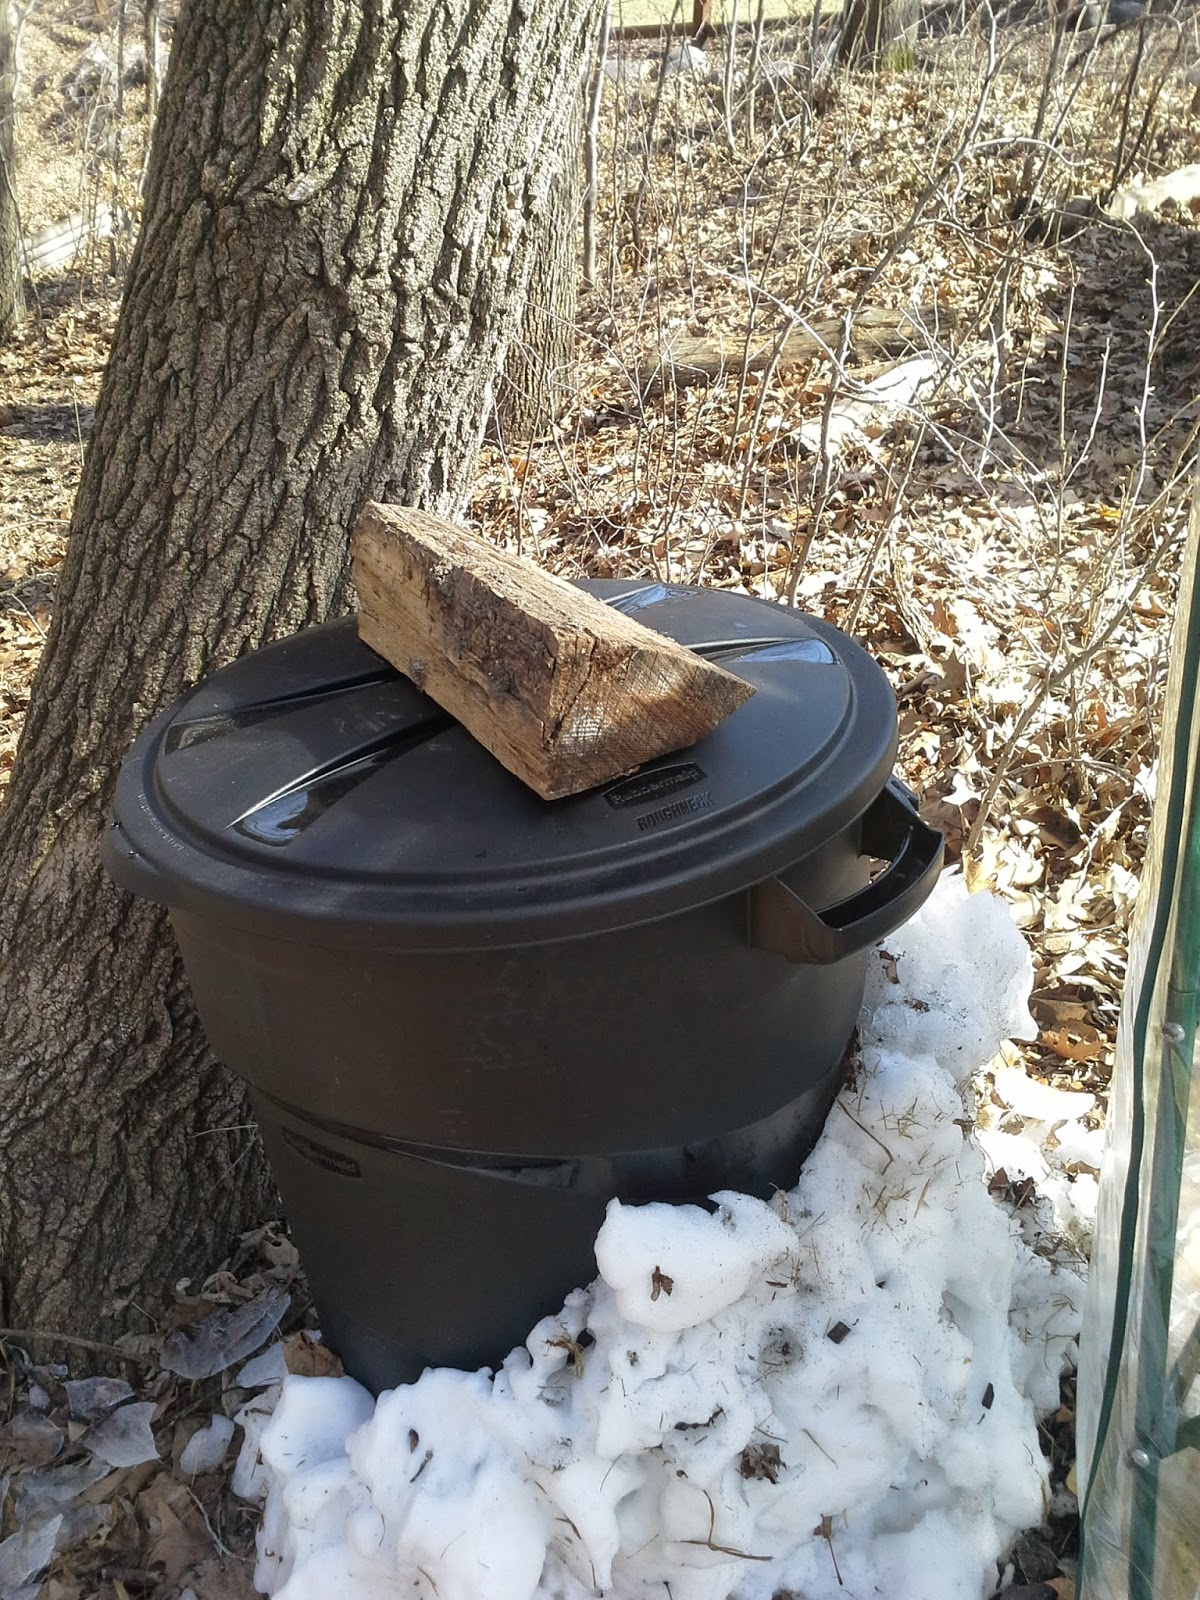 Storing maple sap outside to make maple syrup